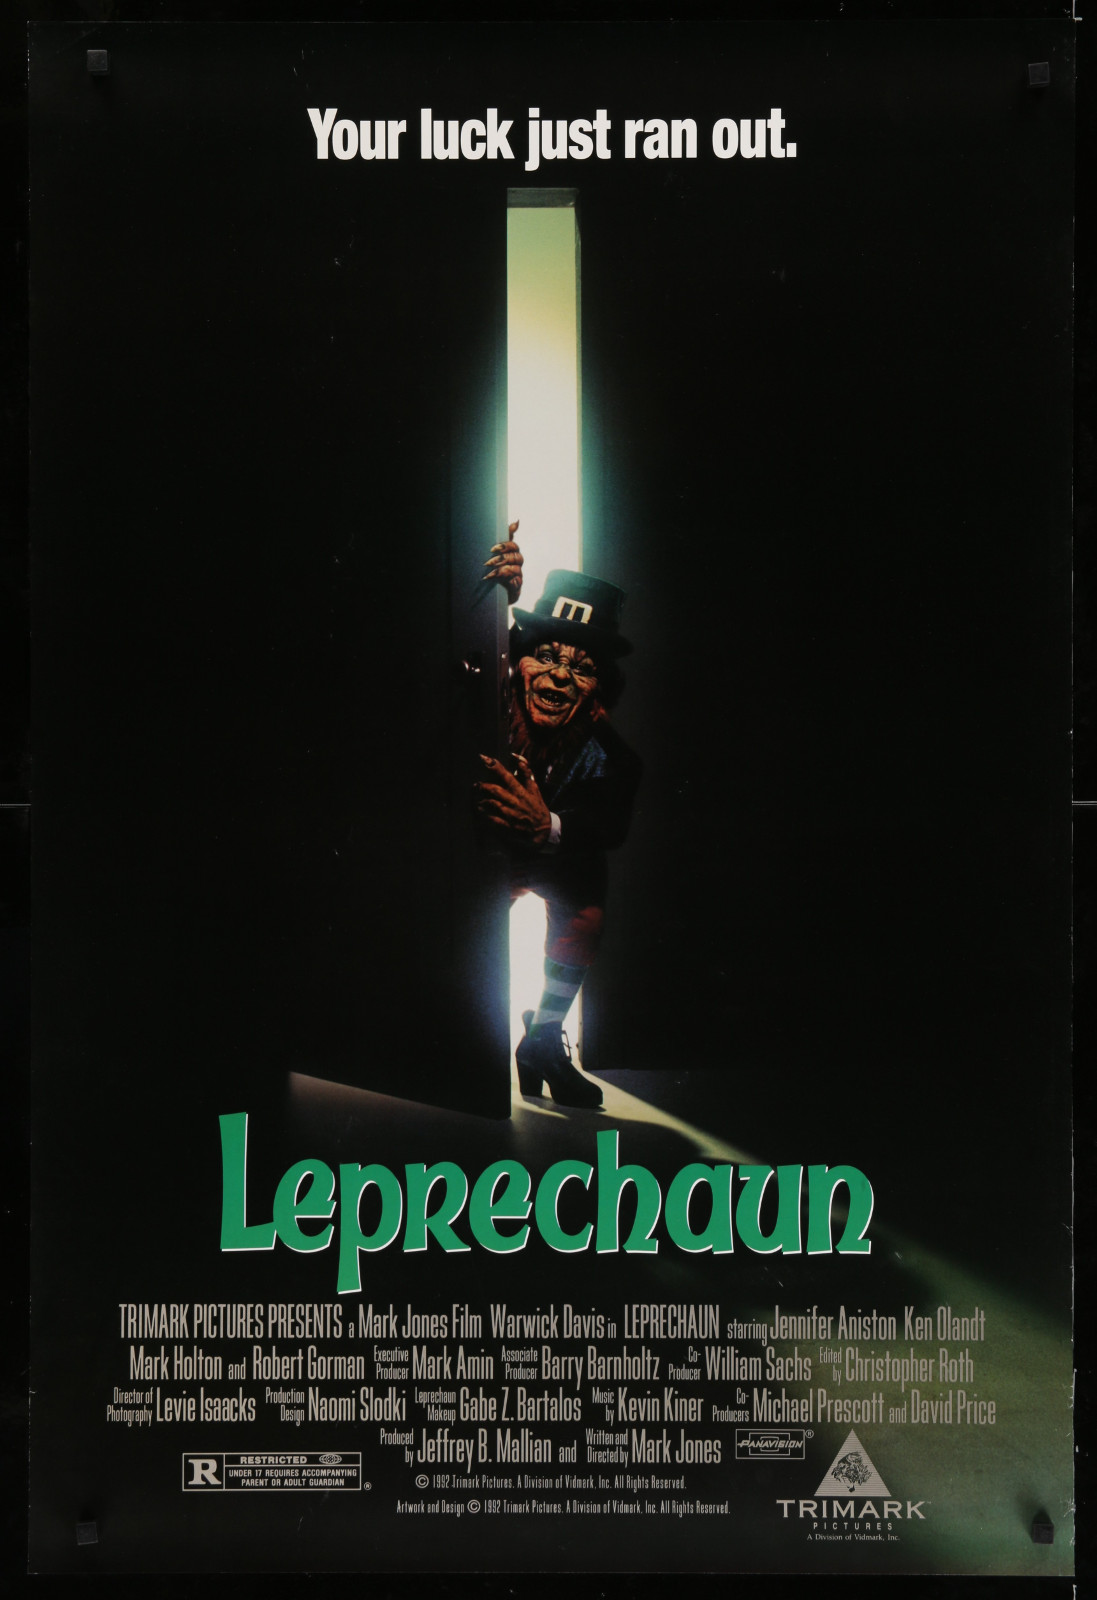 Leprechaun 2A393 A Part Of A Lot 23 Unfolded Mostly Double-Sided 27X40 One-Sheets '90S Great Movie Images!